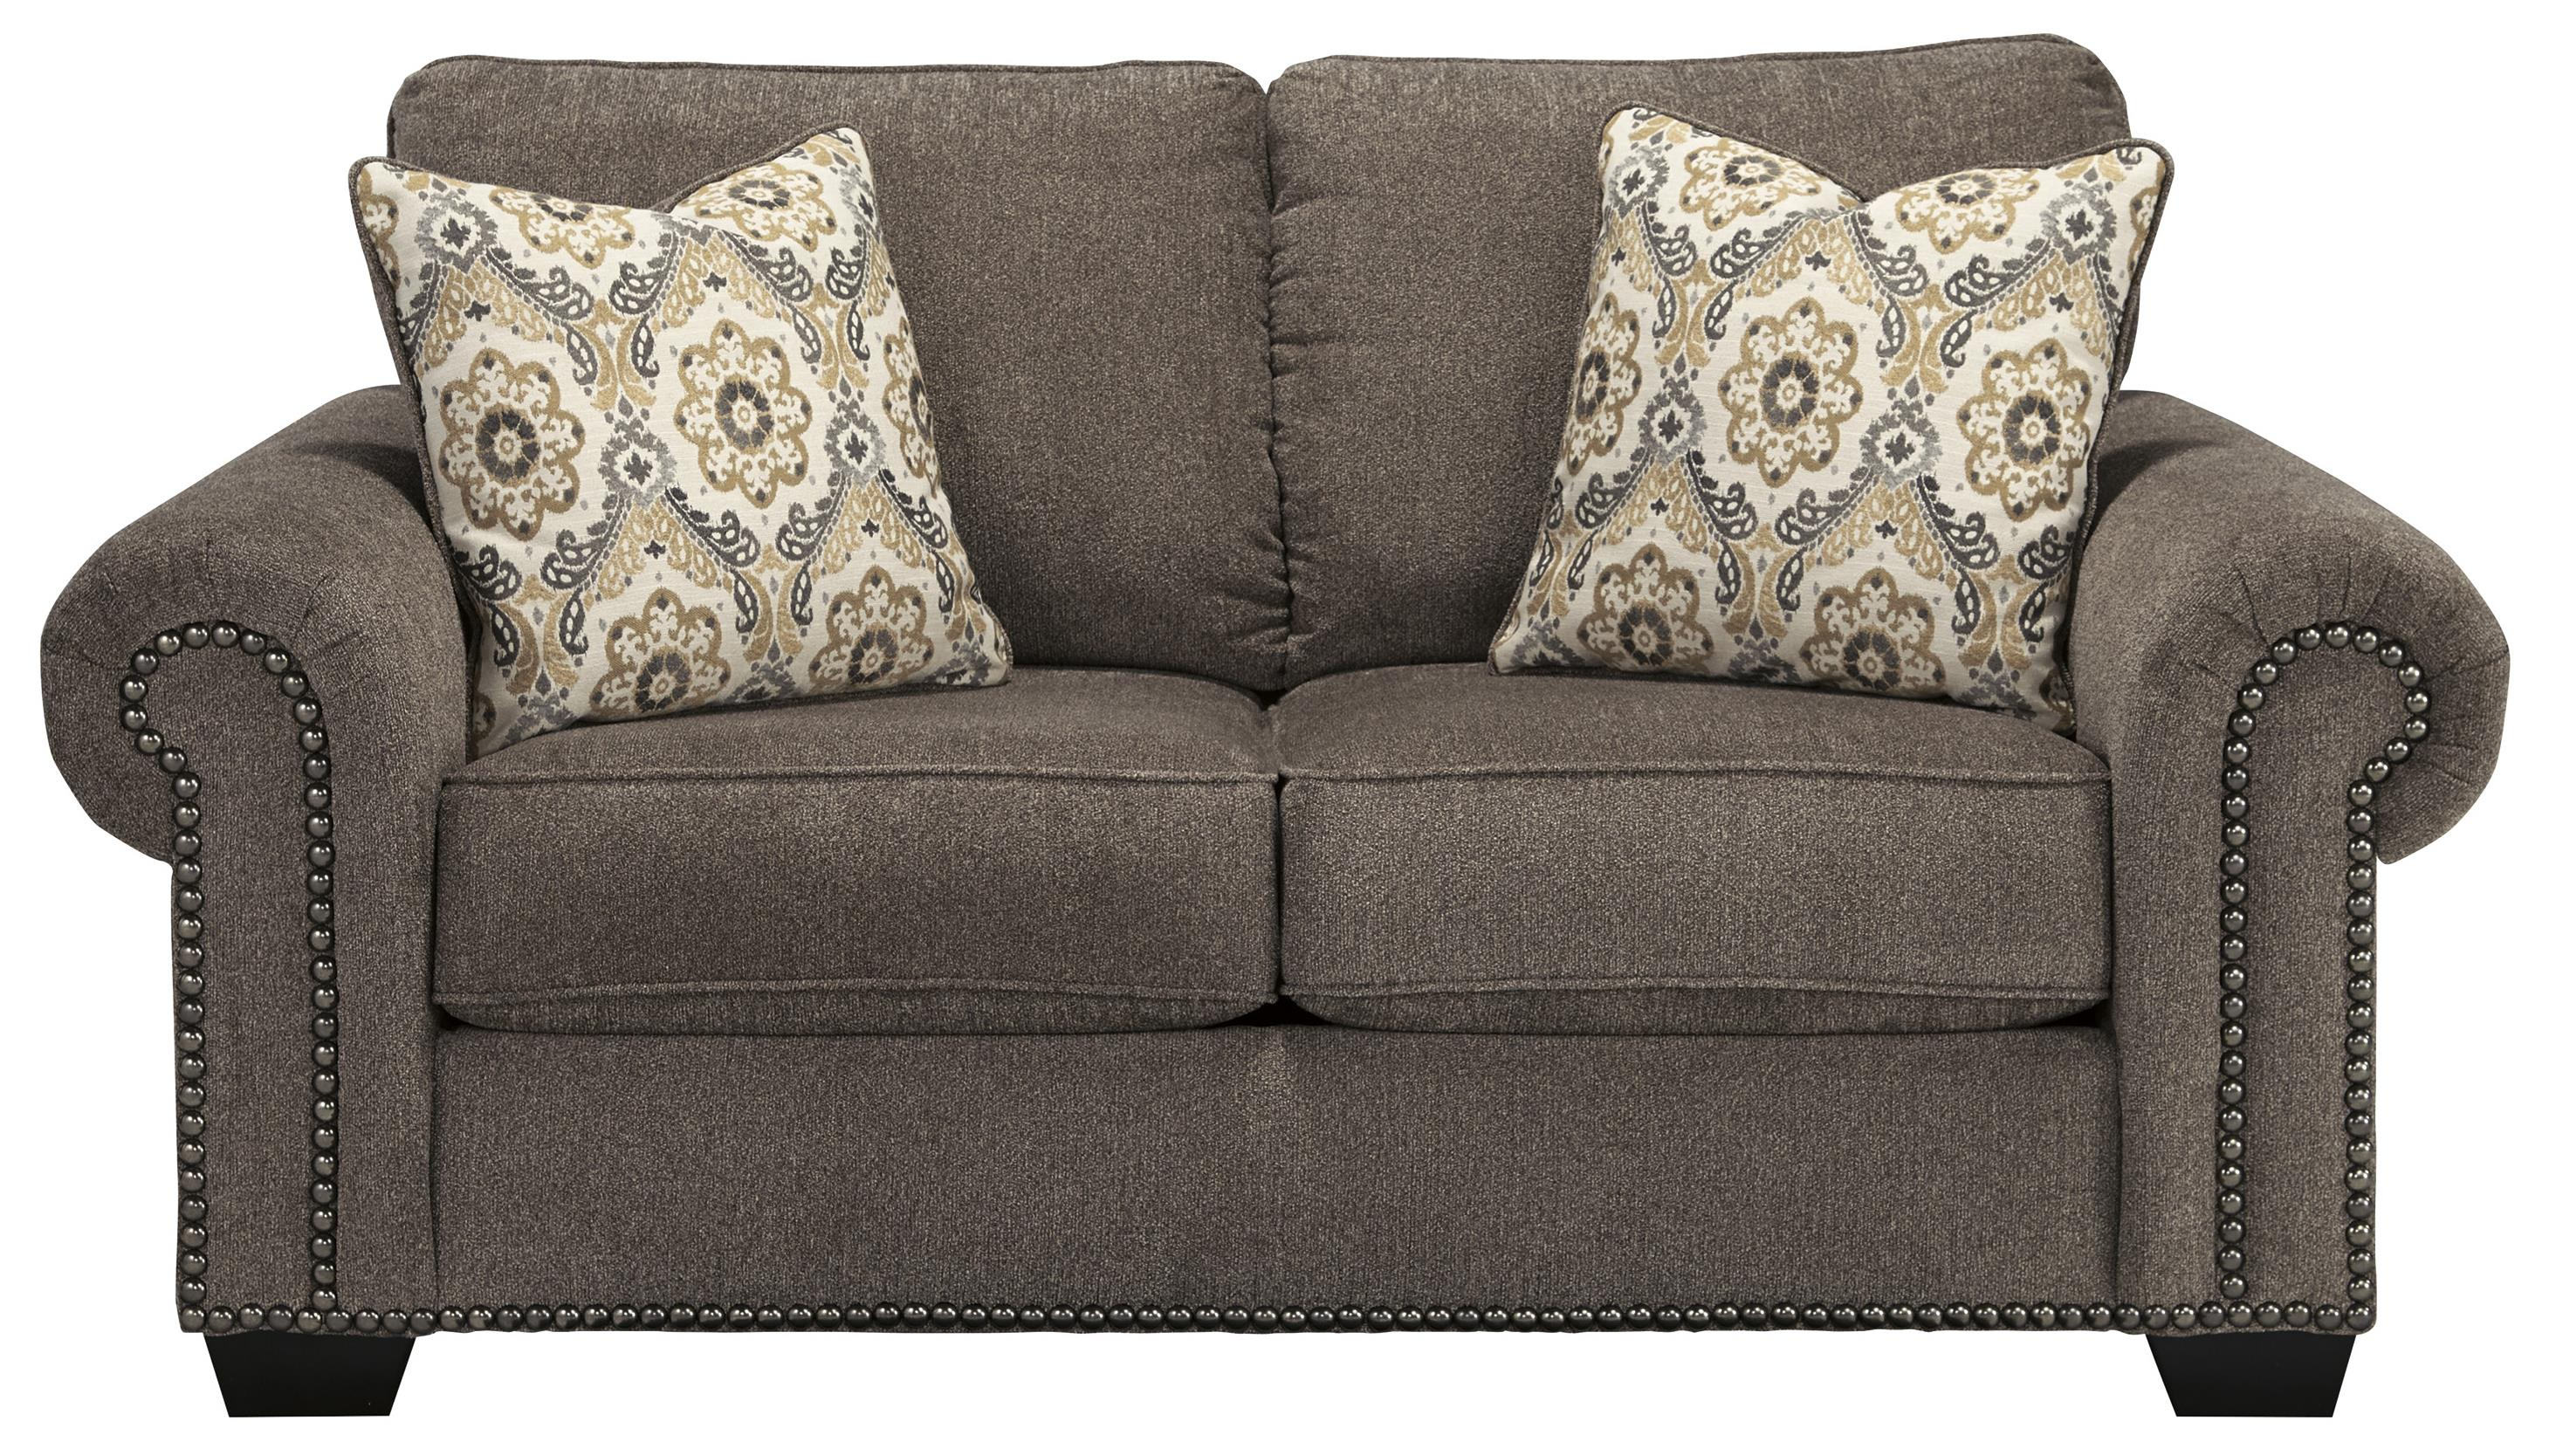 Transitional Loveseat With Nailhead Trim Amp Coil Seating By